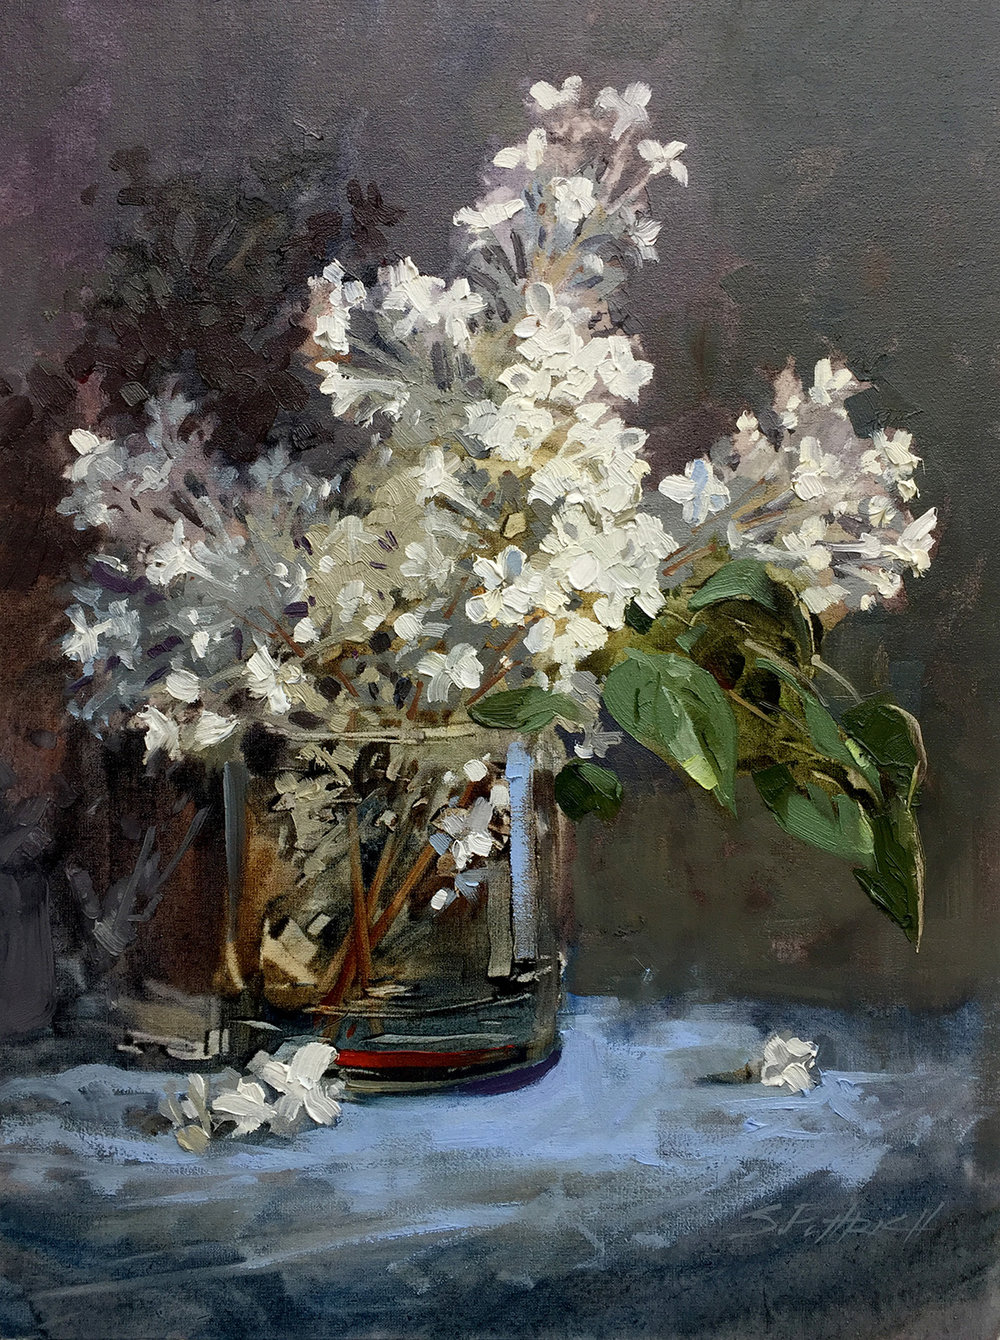 "Title: Lilacs in a Glass In the final days of Édouard Manet's life, he was homebound with illness. Friends would bring him fresh flowers as gifts. He would in turn paint these flowers in various still life's in glass vases This is my ode to Édouard Manet's and his flowers. Medium: Oil on Canvas Size: 12"" x 16"" Status: Dry and ready for your frame."